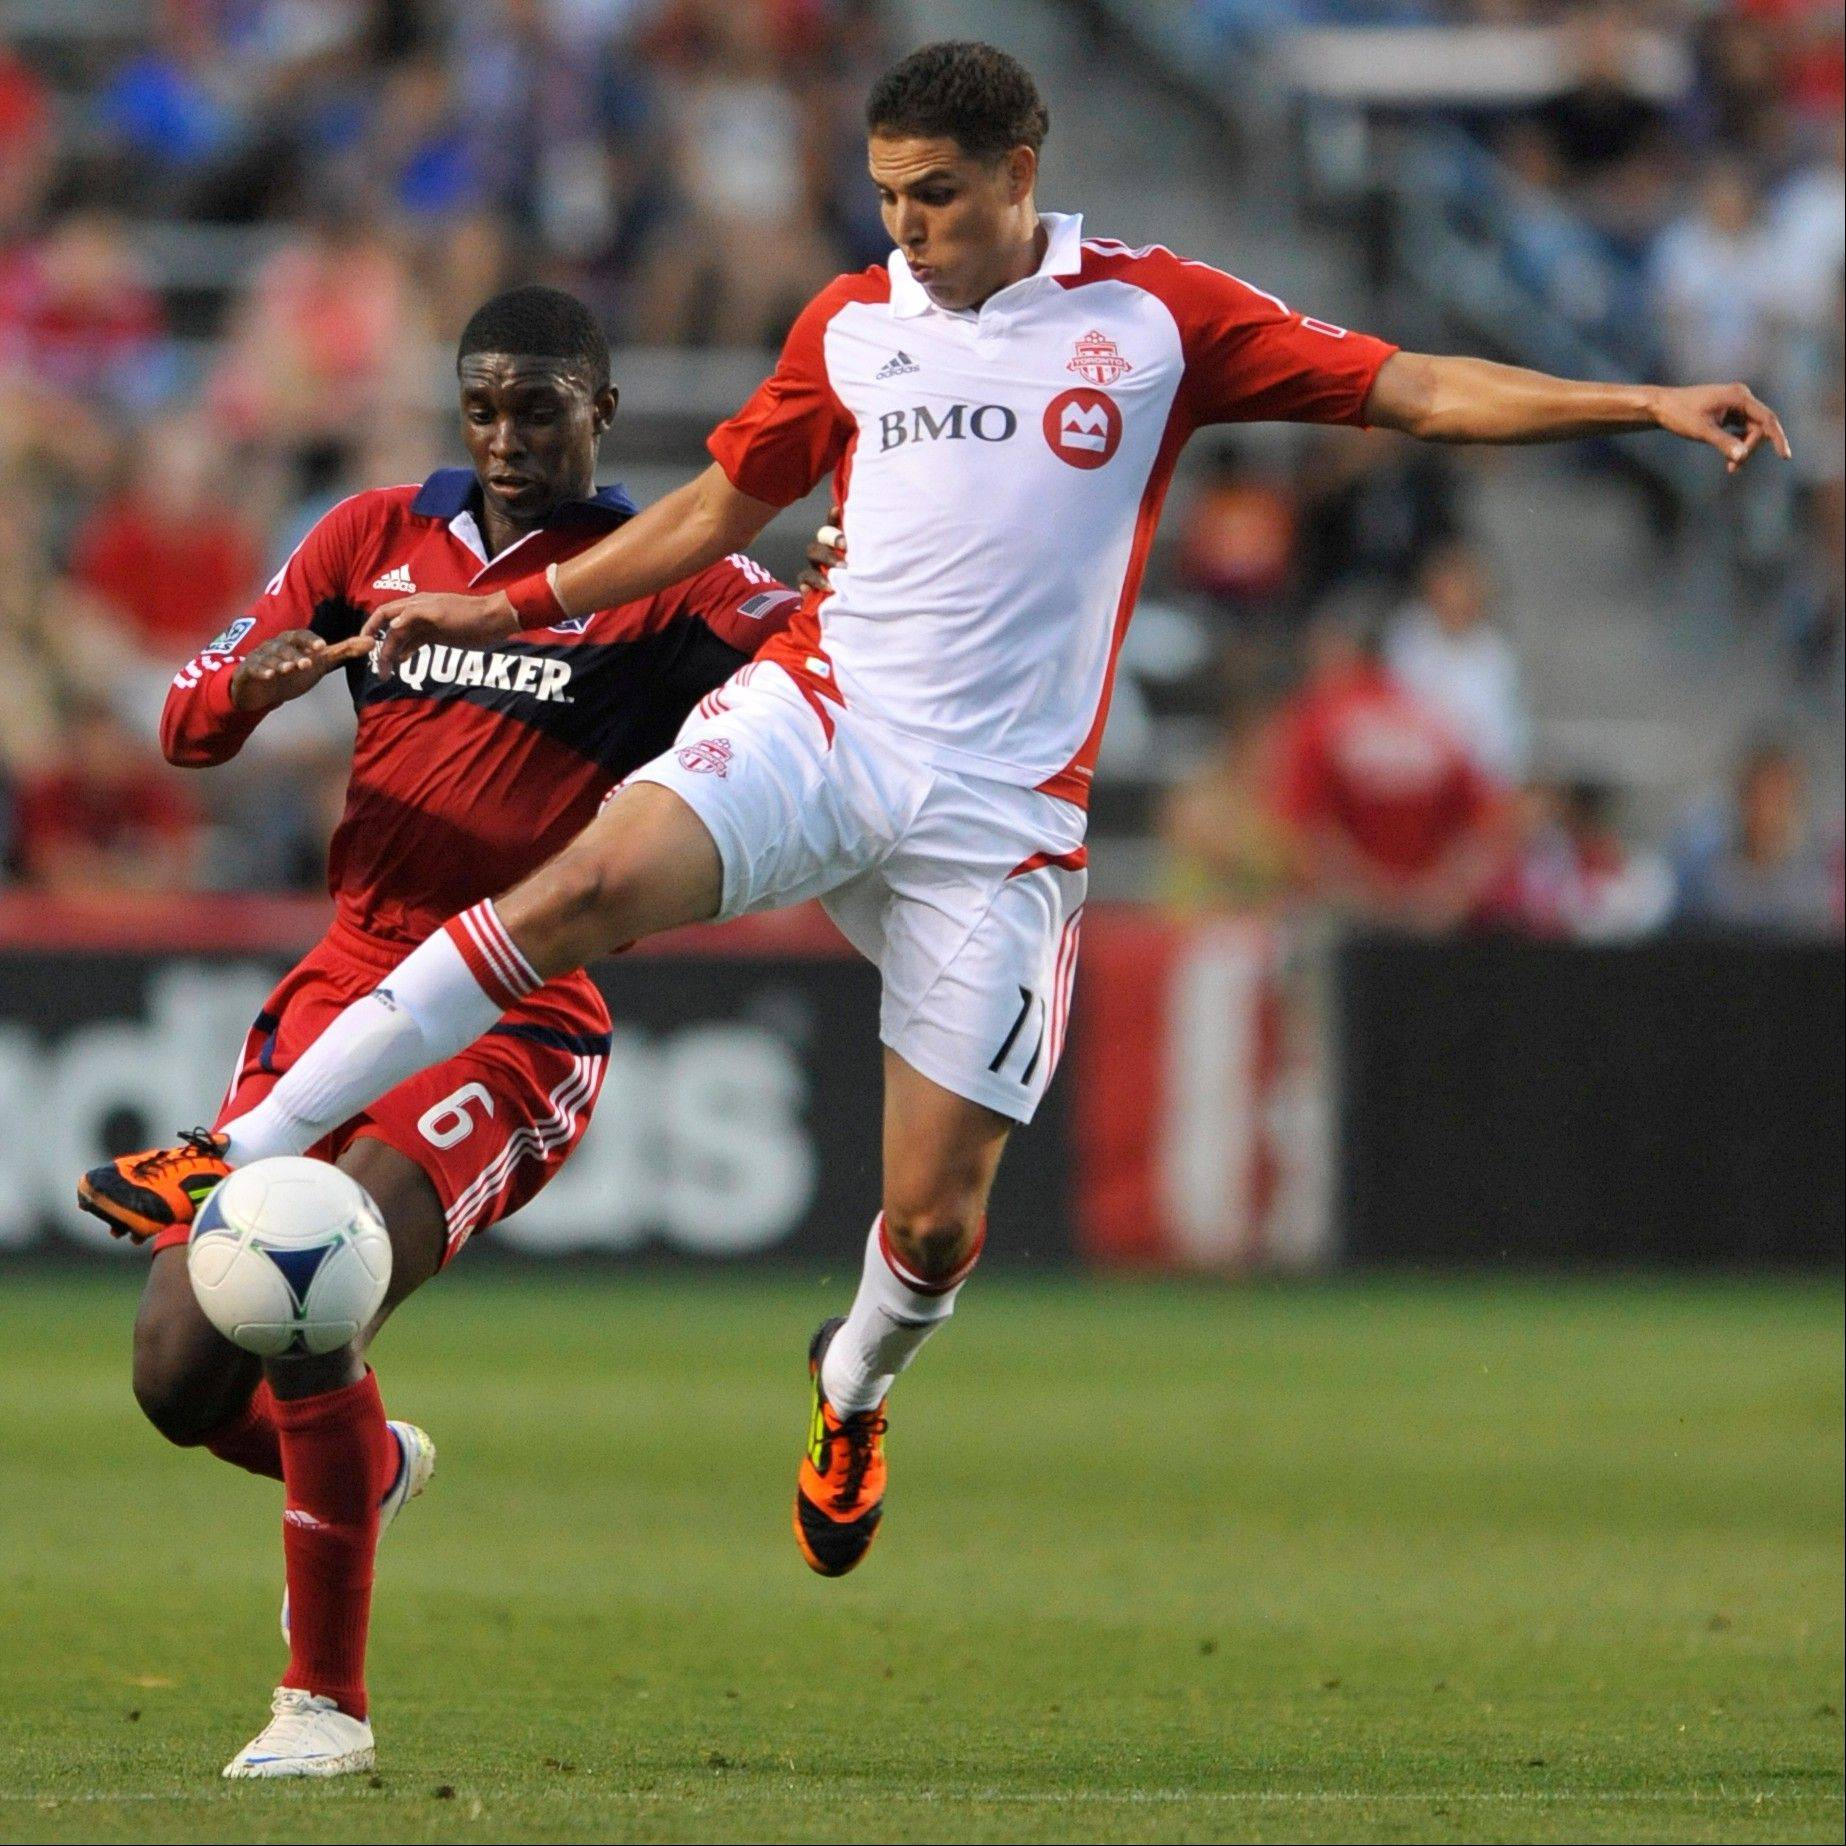 Toronto FC's Luis Silva works against the Fire's Jalil Anibaba for the ball in the first half Saturday night at Toyota Park.